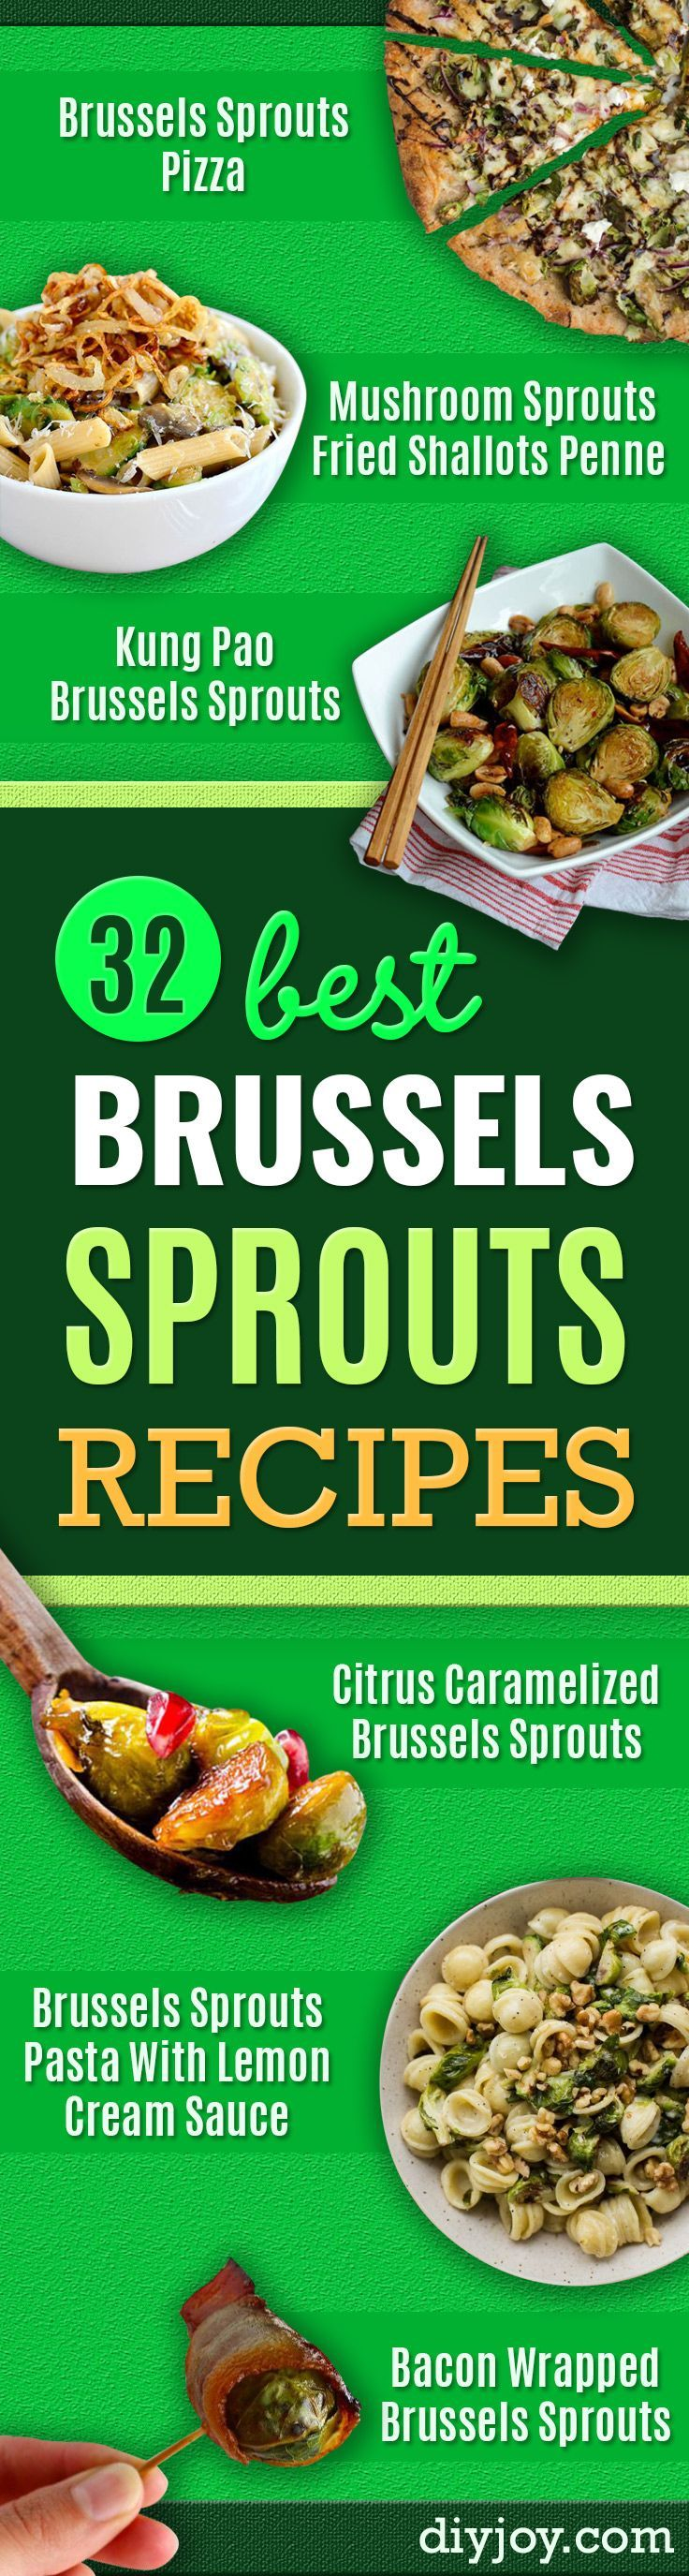 Best Brussel Sprout Recipes - Easy and Quick Delicious Ideas for Making Brussel Sprouts With Bacon, Roasted, Creamy, Healthy, Baked, Sauteed, Crockpot, Grilled, Shredded and Salad Recipe Ideas - Cool Lunches, Dinner, Snack, Side and DIY Dinner Vegetable Dishes http://diyjoy.com/best-brussel-sprout-recipes